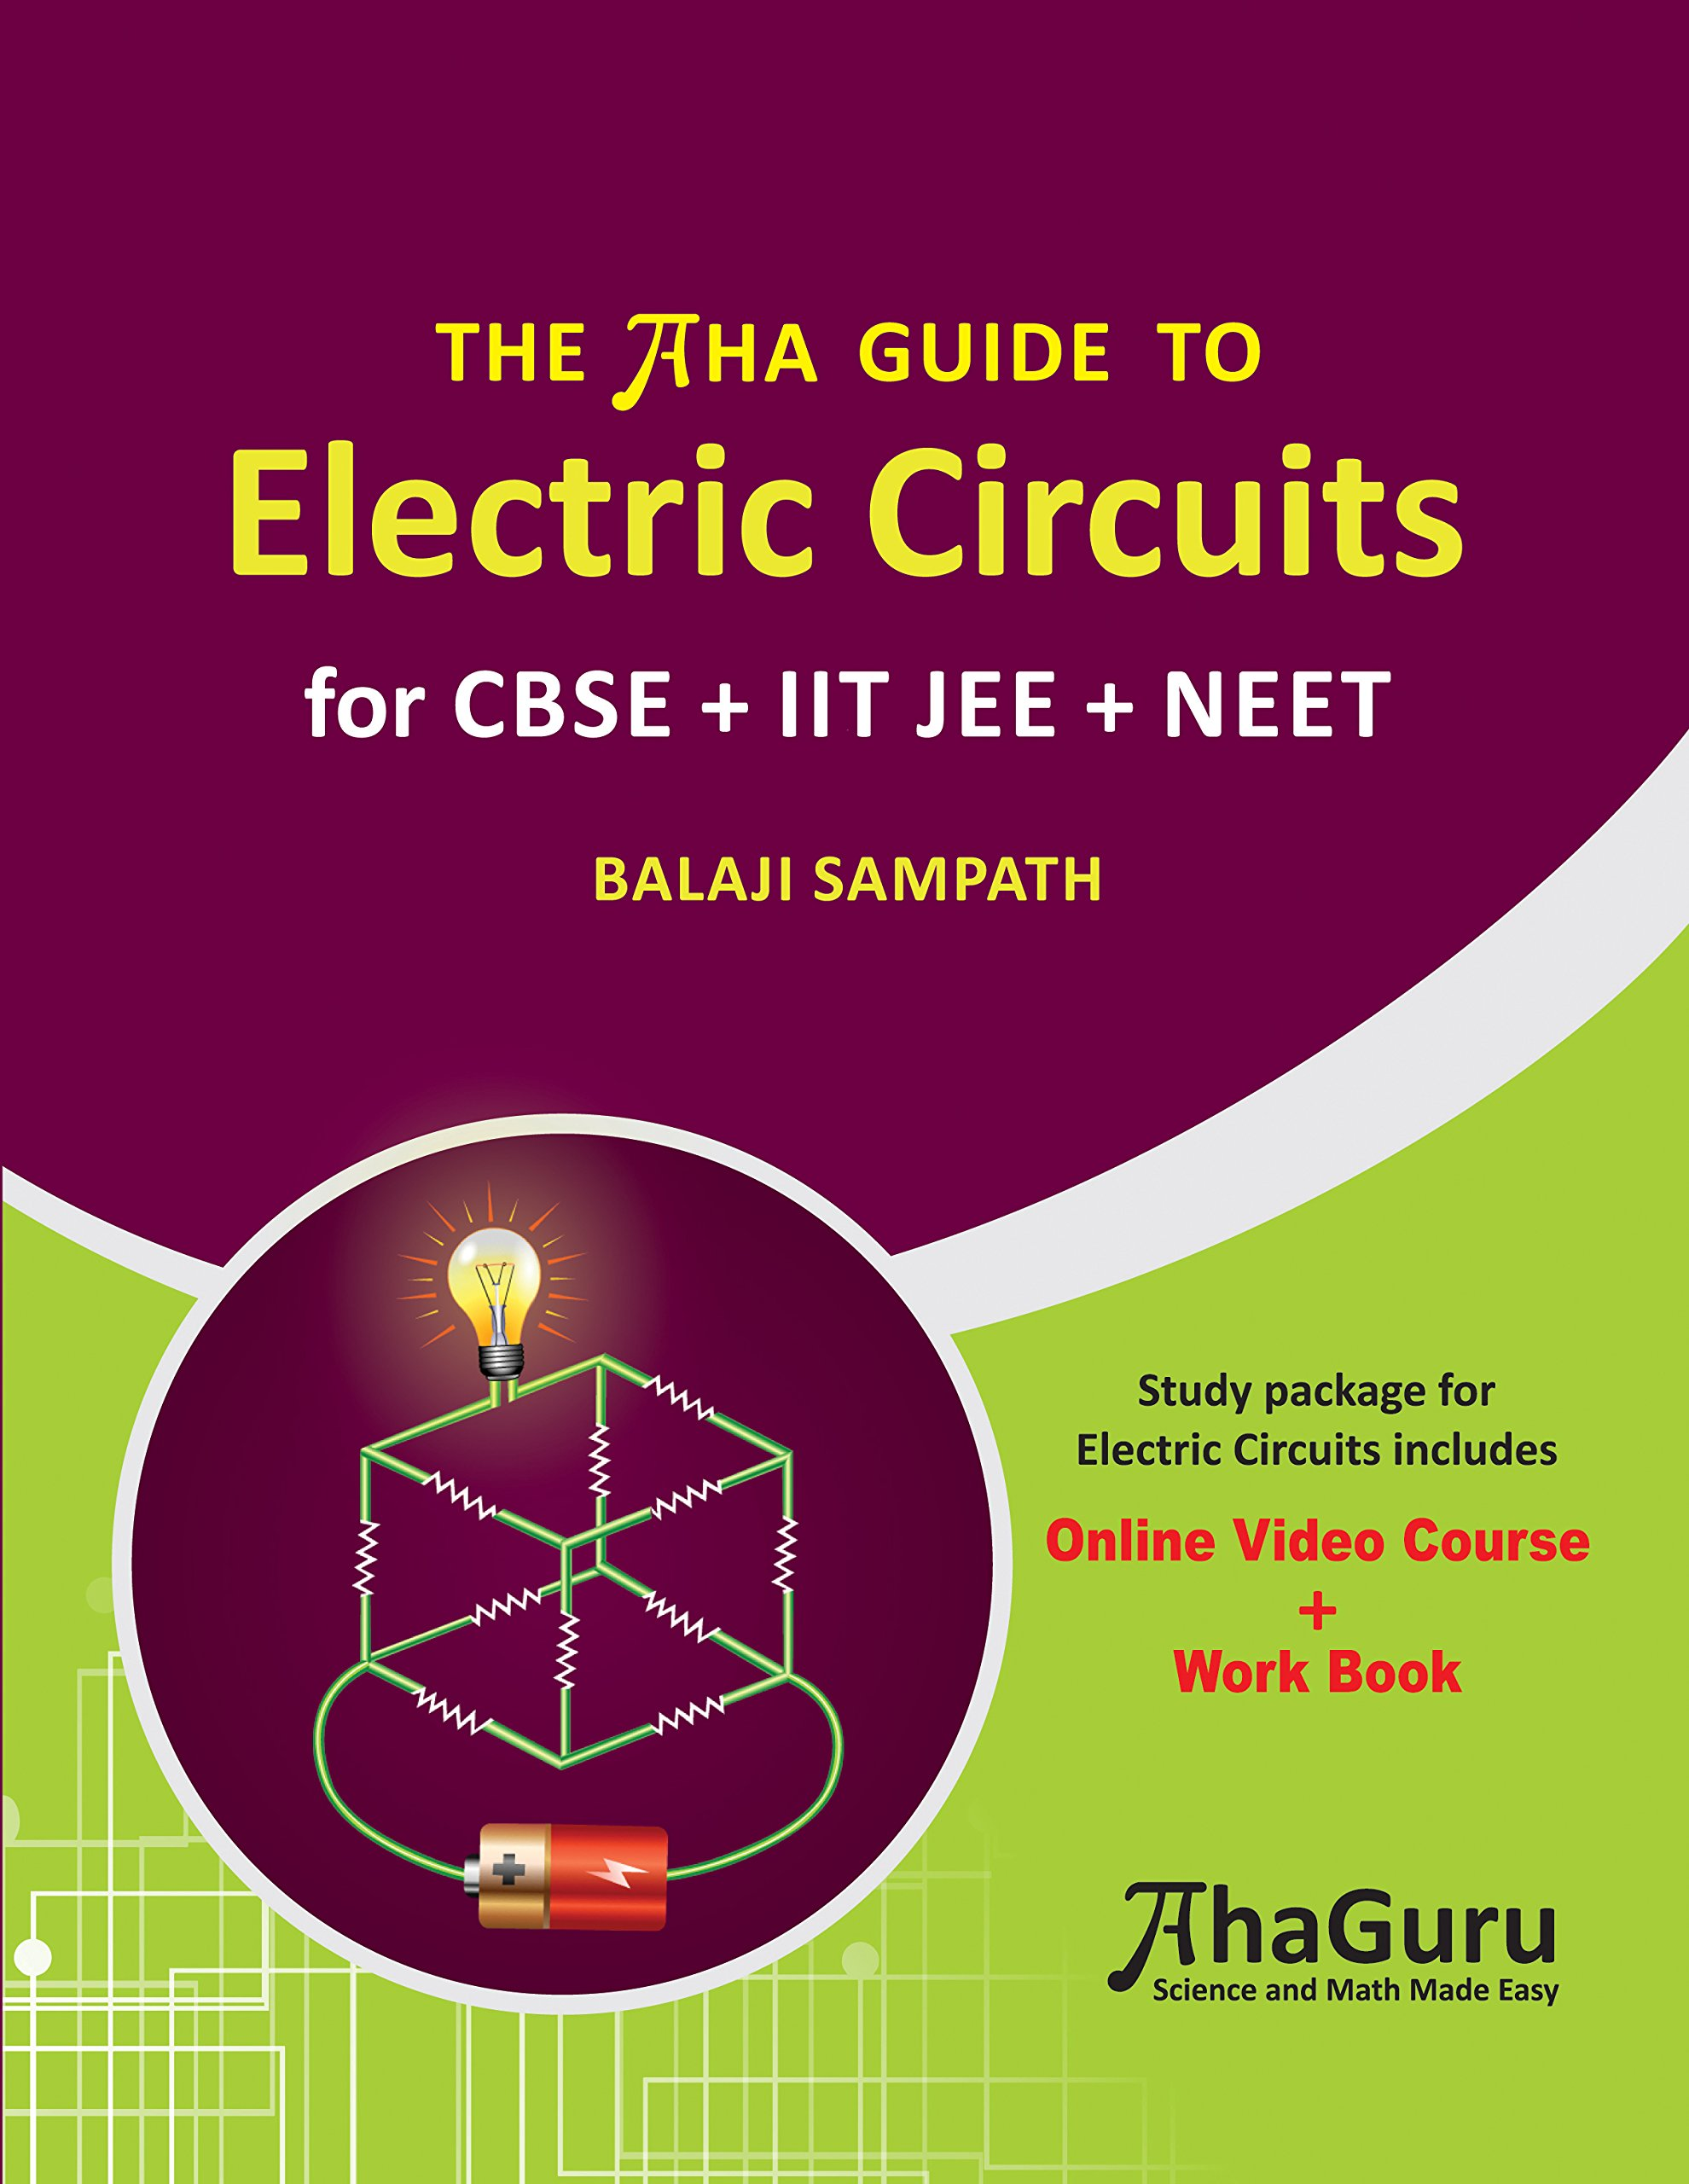 The Aha Guide To Electric Circuits For Cbse Iit Jee Neet Online How Does Circuit Work Video Course Book First Edition 2017 Dr Balaji Sampath 9788192704425